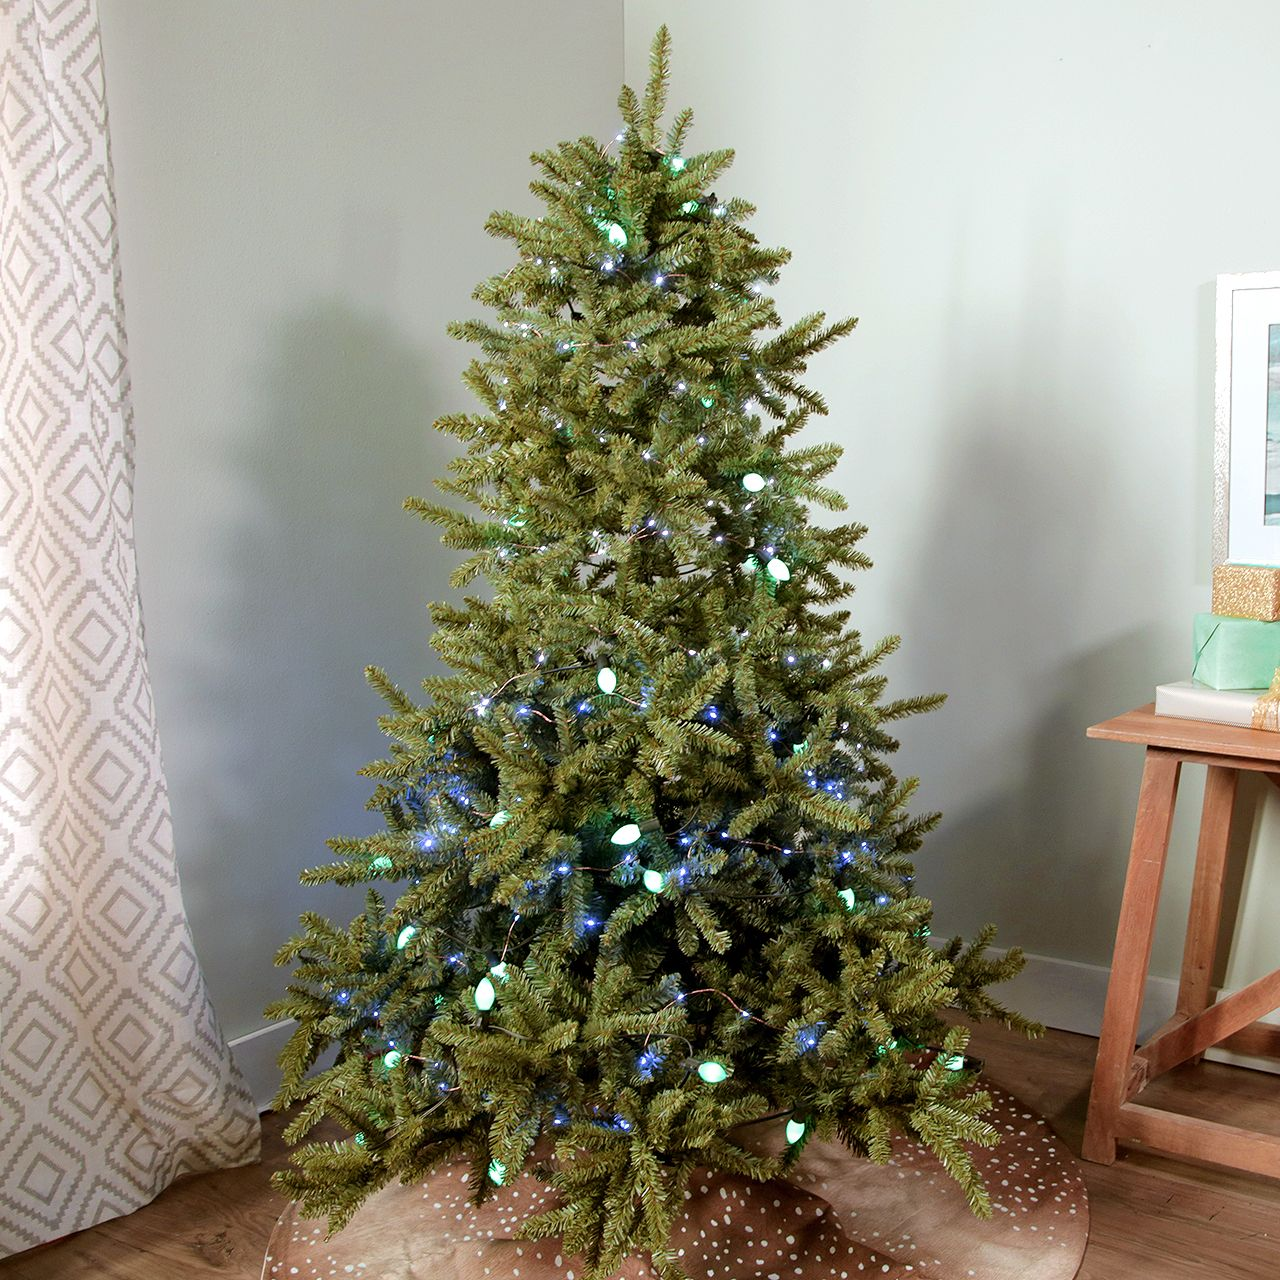 The Top Christmas Tree Decorating Trends According To Our Editors Christmas Tree Lighting Hanging Christmas Tree Hanging Christmas Lights